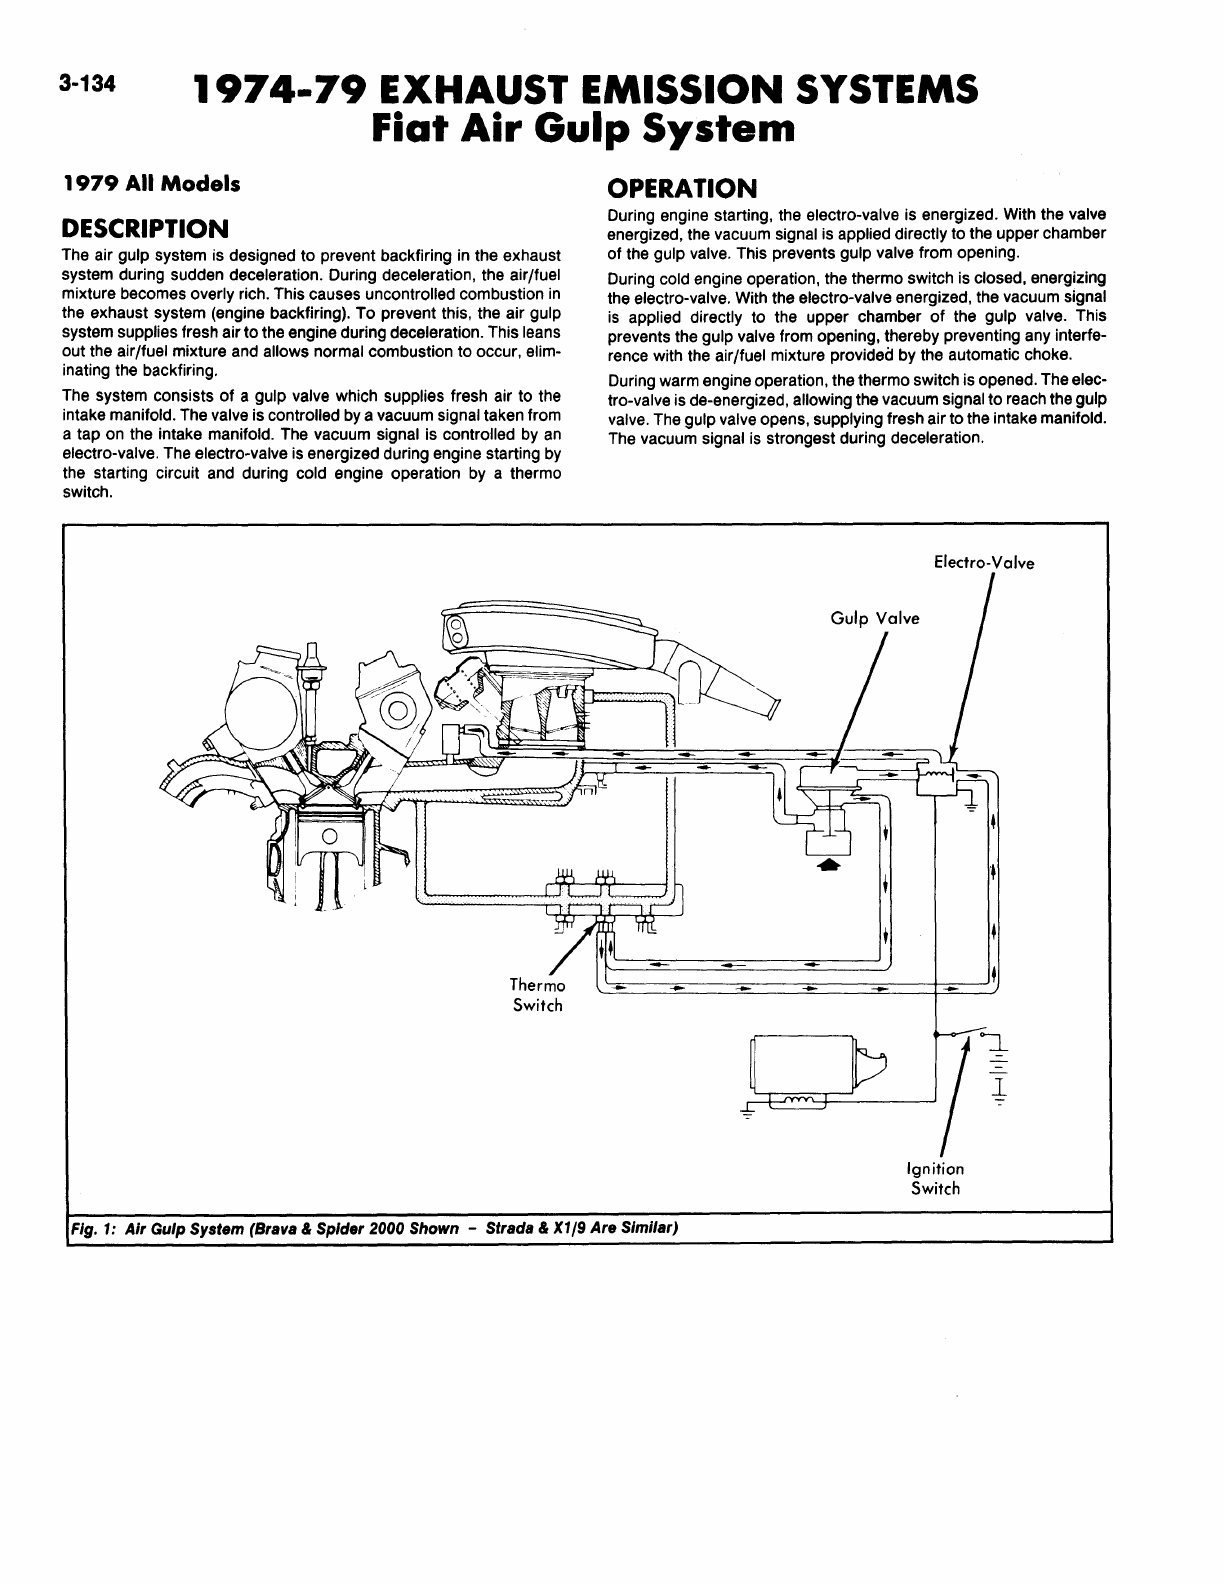 Ignition Switch 1979 Fiat X1 9 Free Download 79 124 Schematic X19 Workshop Manual Instructions Pdf Rally Racing At